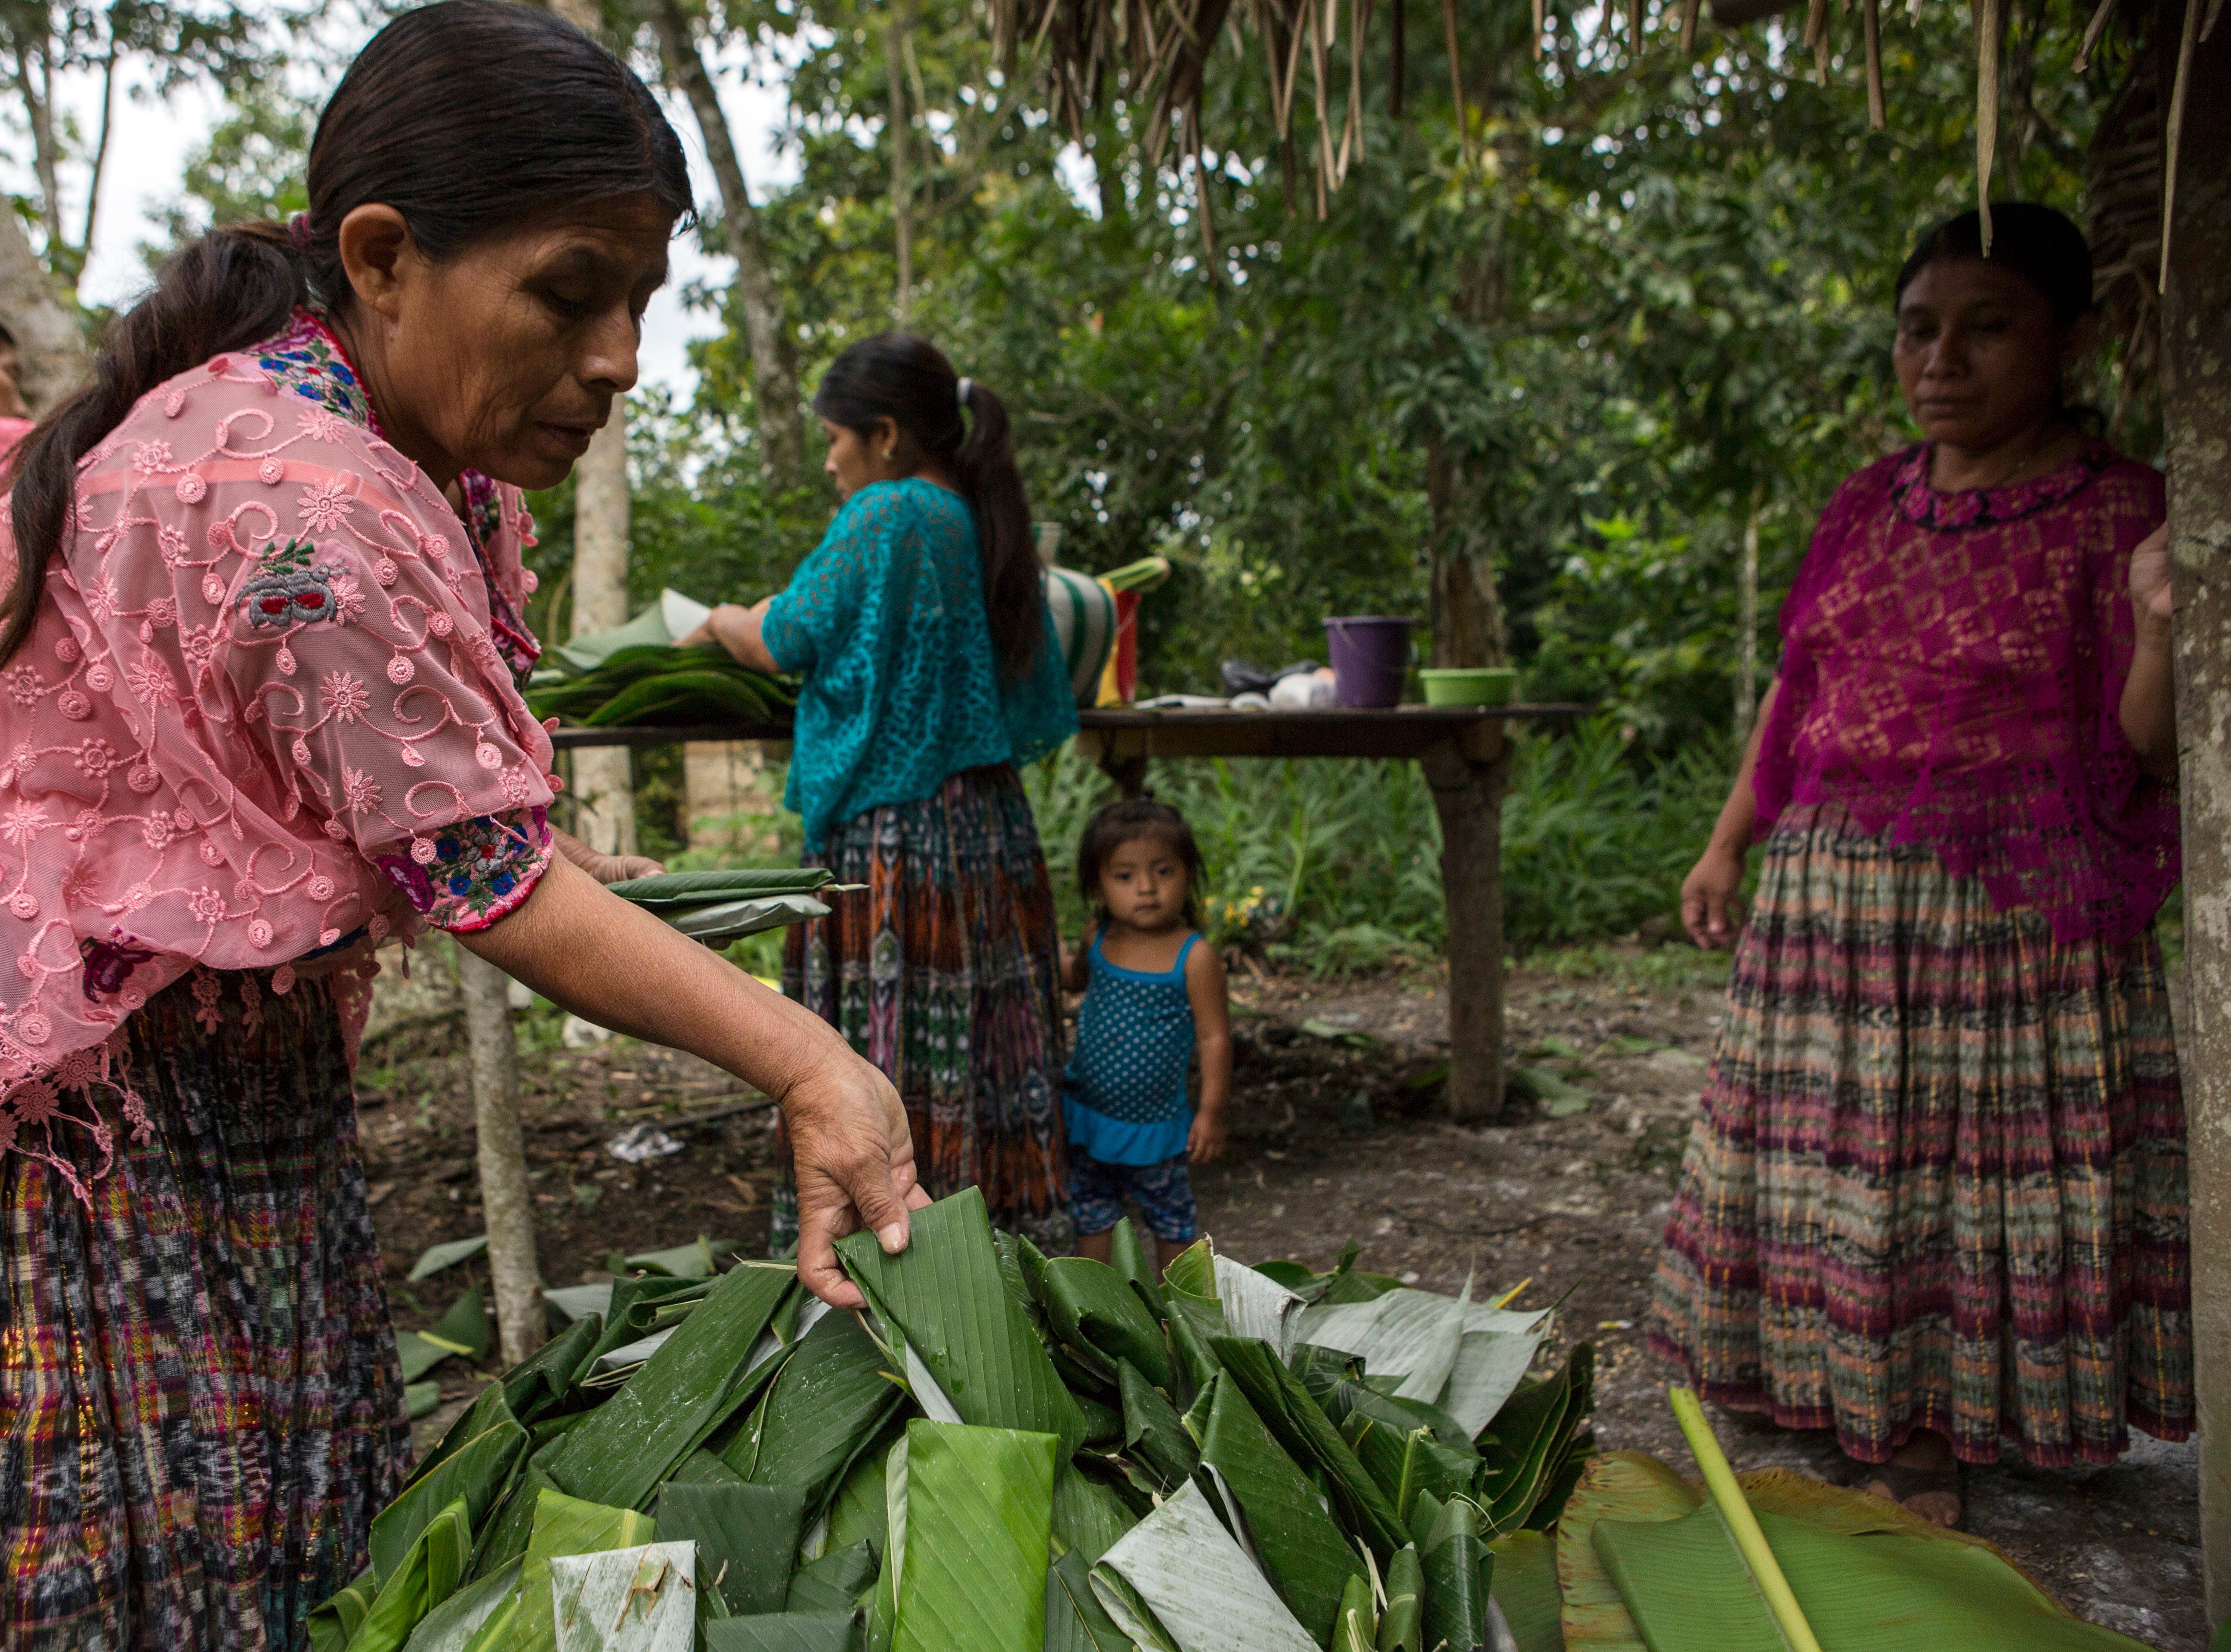 Women cook tamales for the relatives and neighbors who attend the funeral for Jakelin Caal Maquin, in San Antonio Secortez, Guatemala, Sunday, Dec. 23, 2018. The body of Caal Maquin, 7, who died while in custody of the U.S. Border Patrol, arrived in her native Guatemala on Sunday and was driven hours into the countryside to be handed over to family members for a last goodbye.